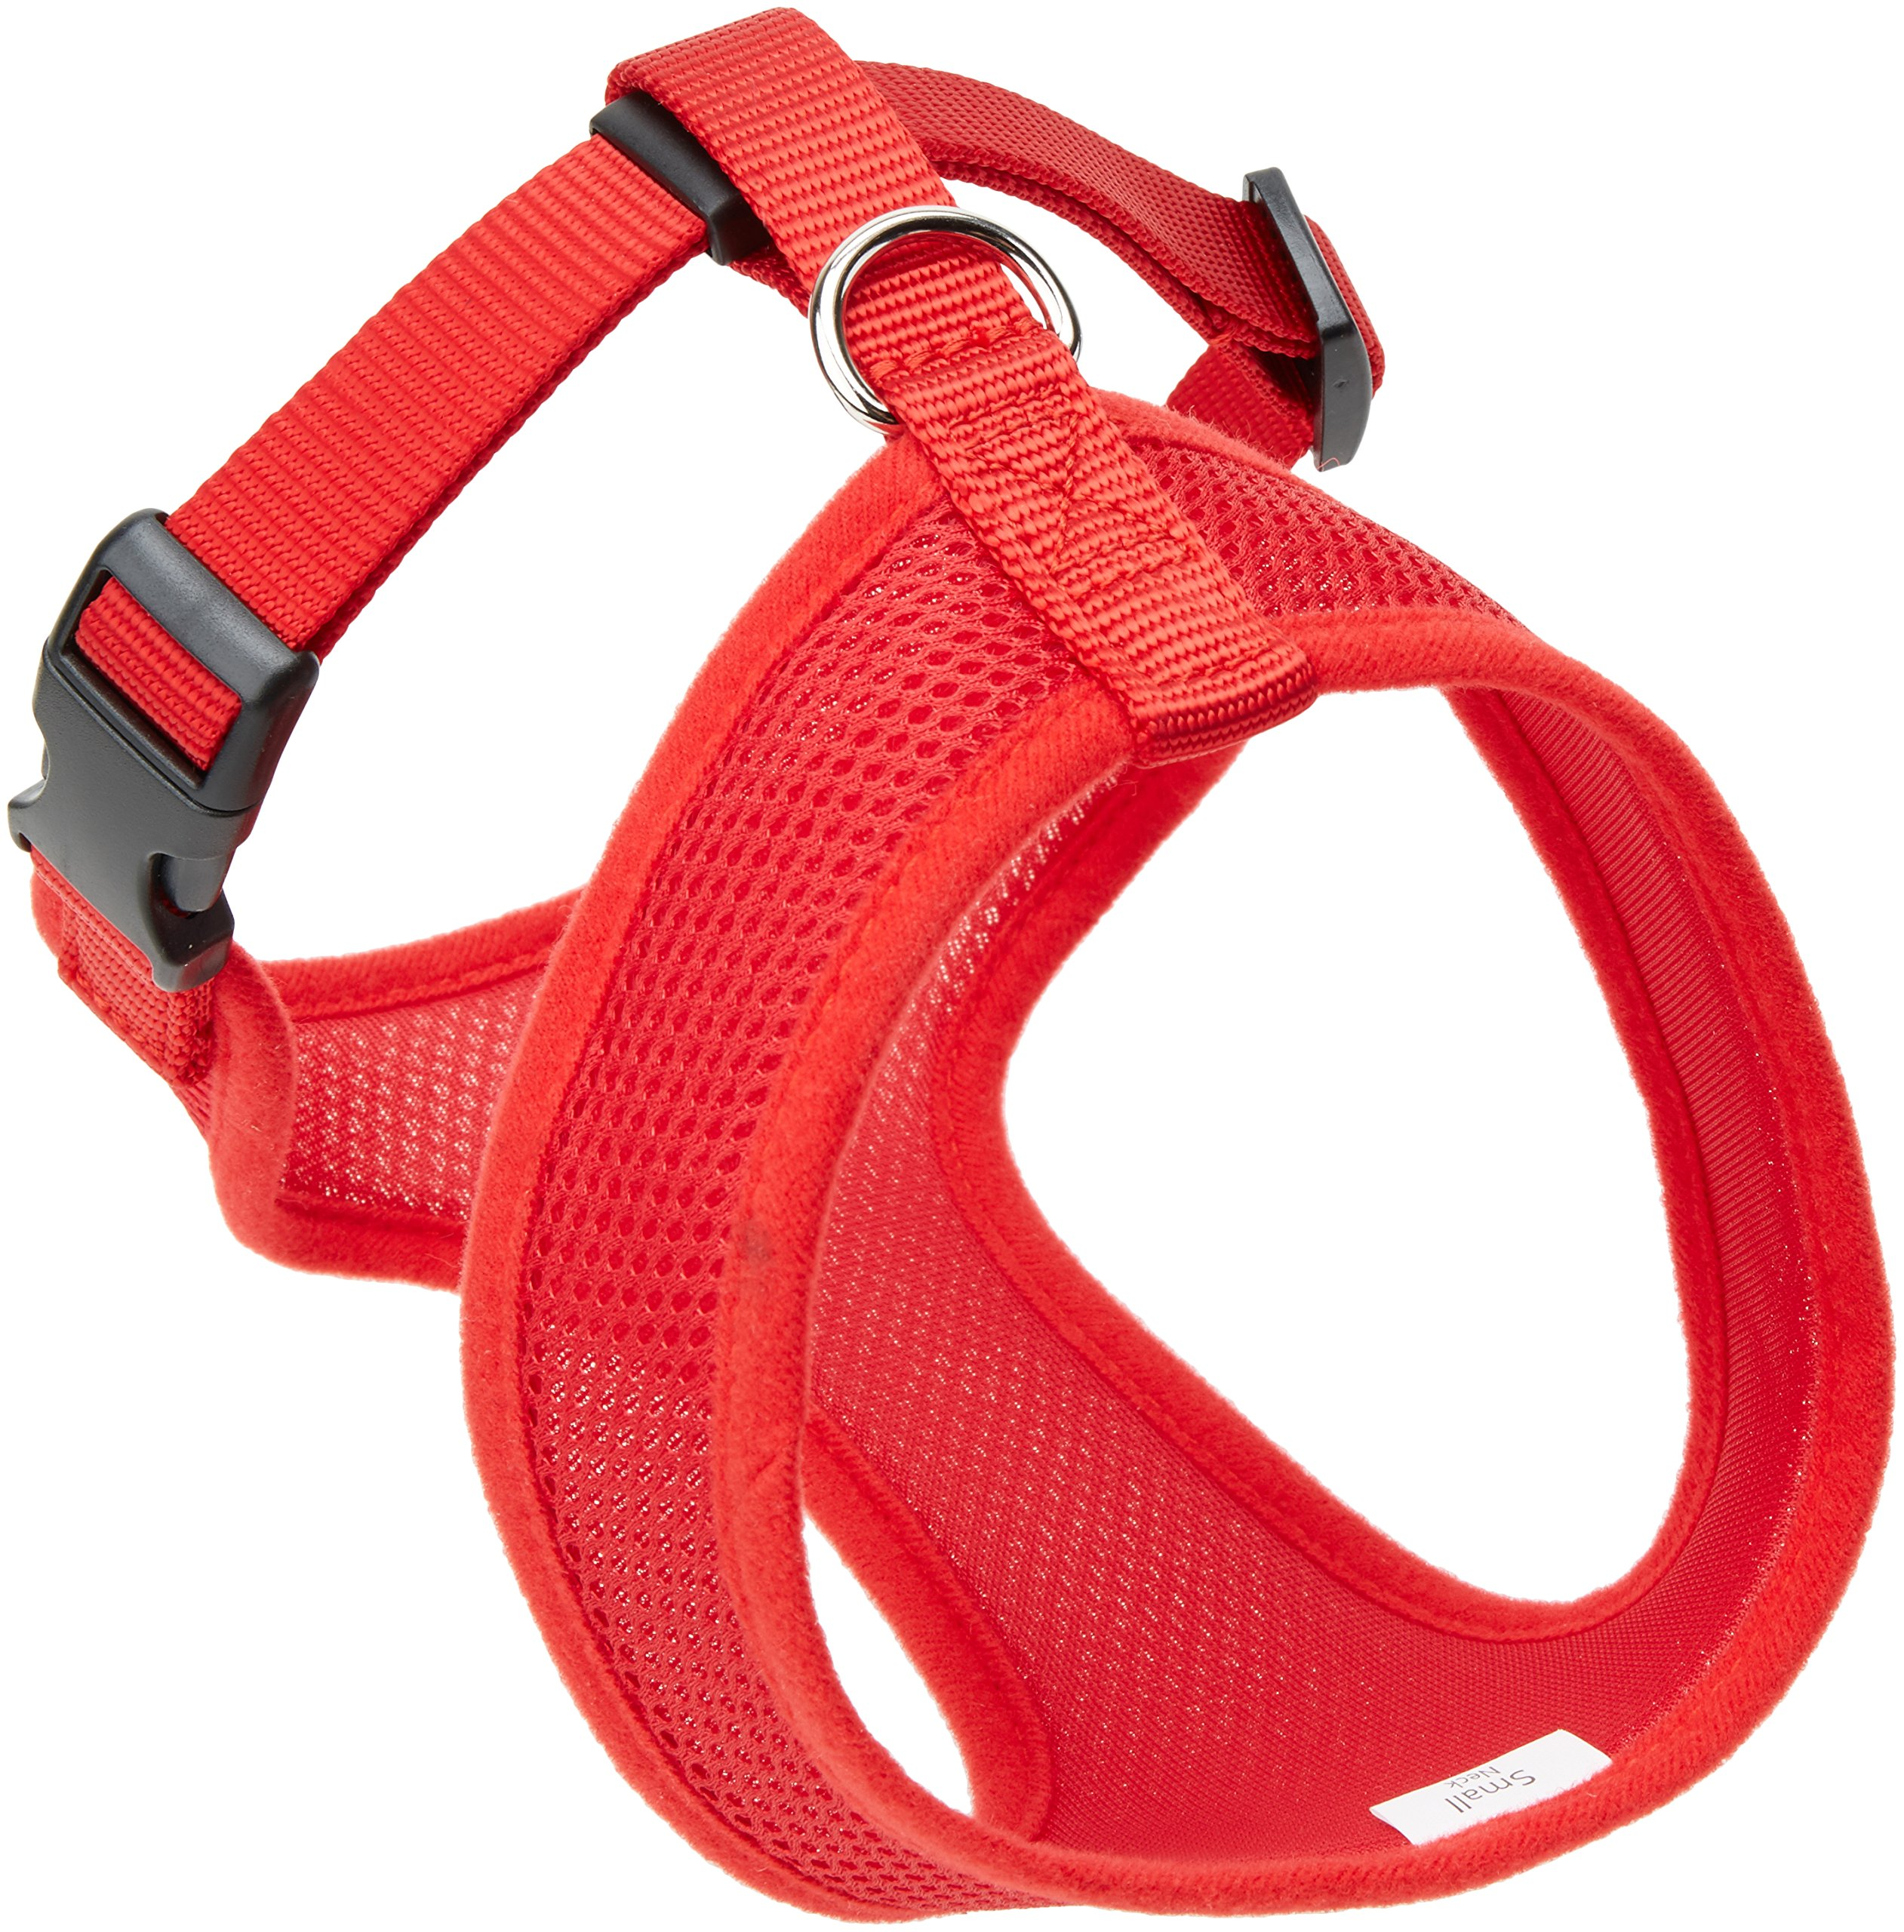 Coastal  Comfort Soft Adjustable Dog Dog Harness - Red Small For Dogs 11-18 lbs